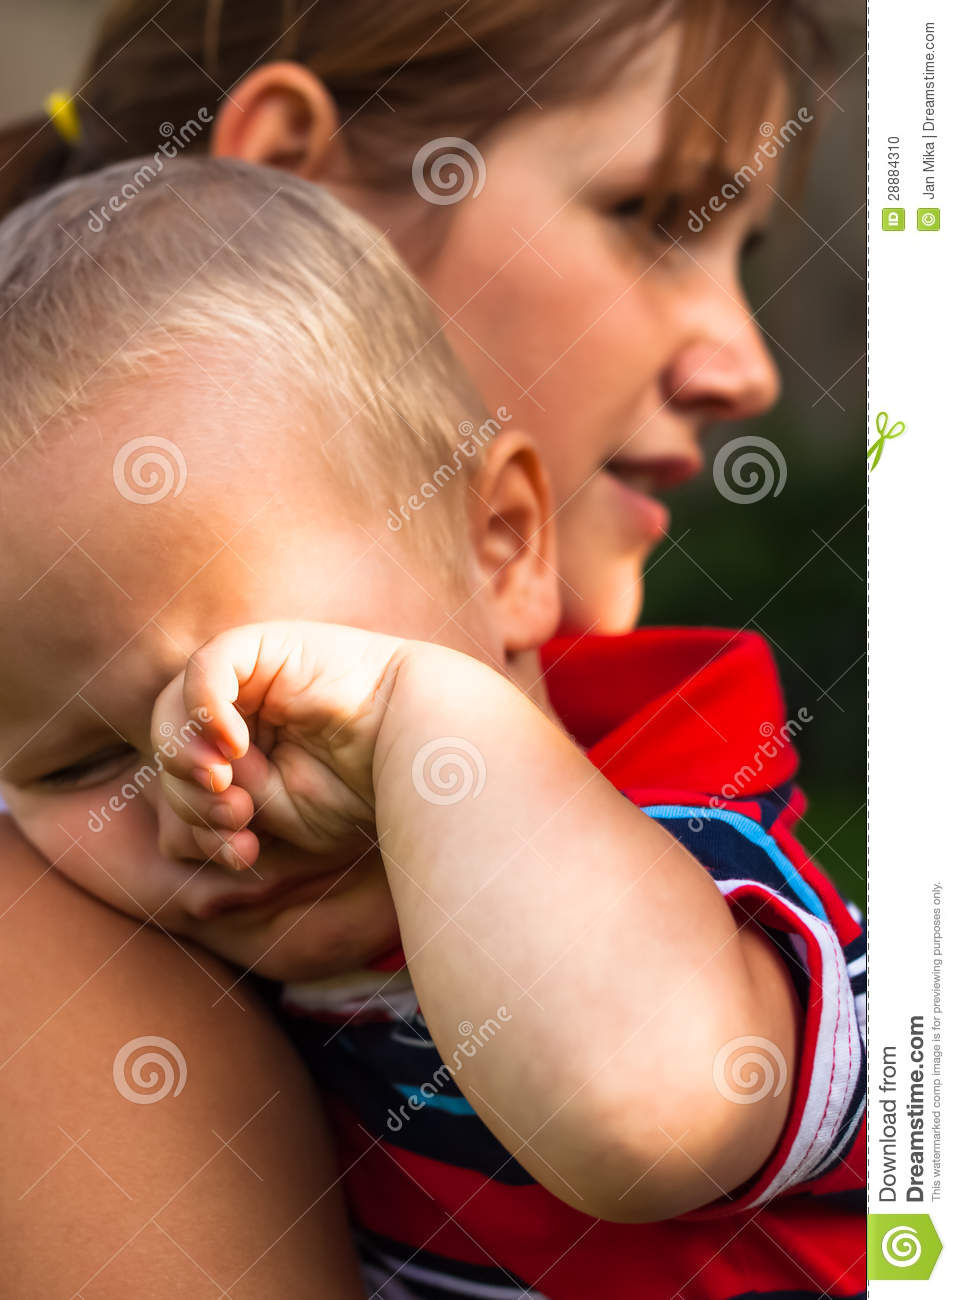 Daddy comforts not his daughter it4reborn 7